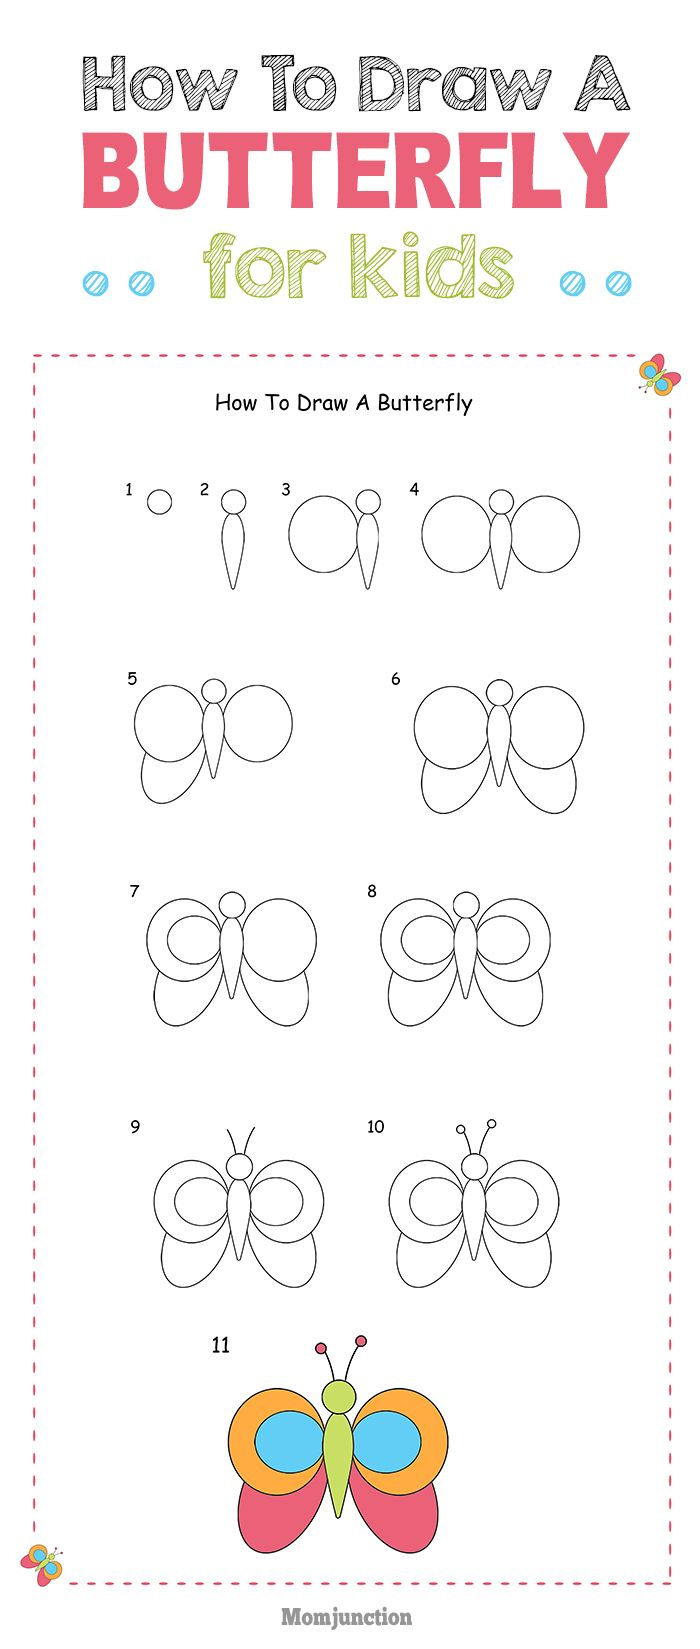 Want to teach a butterfly drawing lesson for your kid, then here is how to draw a butterfly for kids. It will not only teach your kid butterfly drawing, but much more.